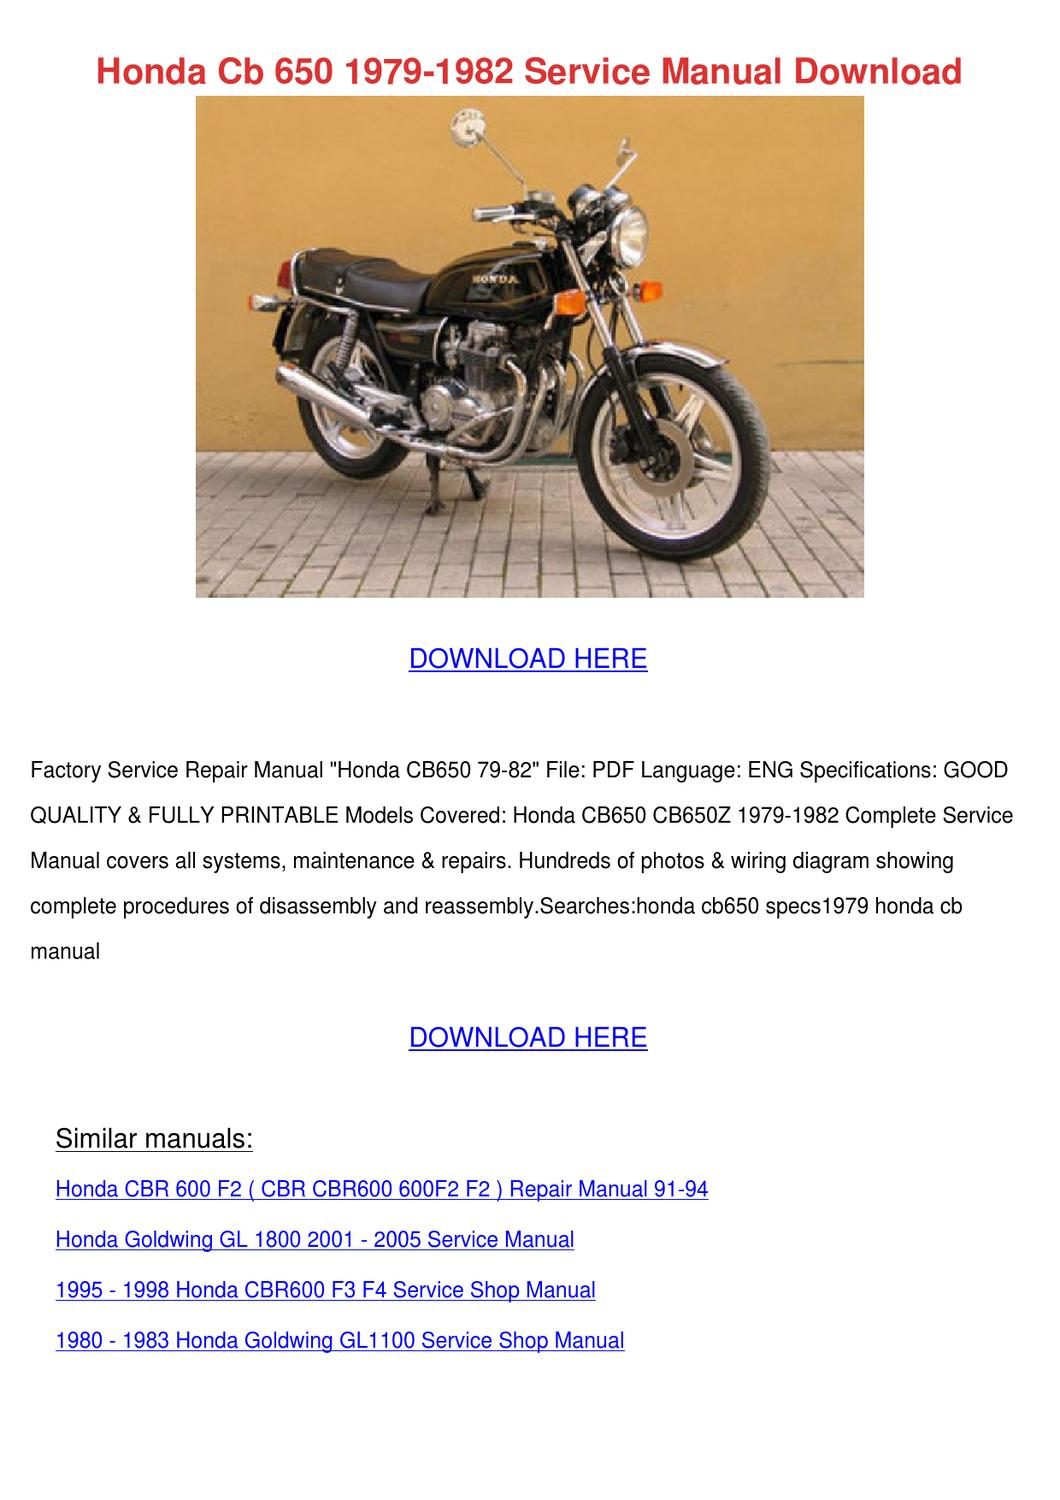 hight resolution of each them format cyclepedia 1983 cb650sc nighthawk printed features detailed black white photographs wiring diagrams introduction chapter engine